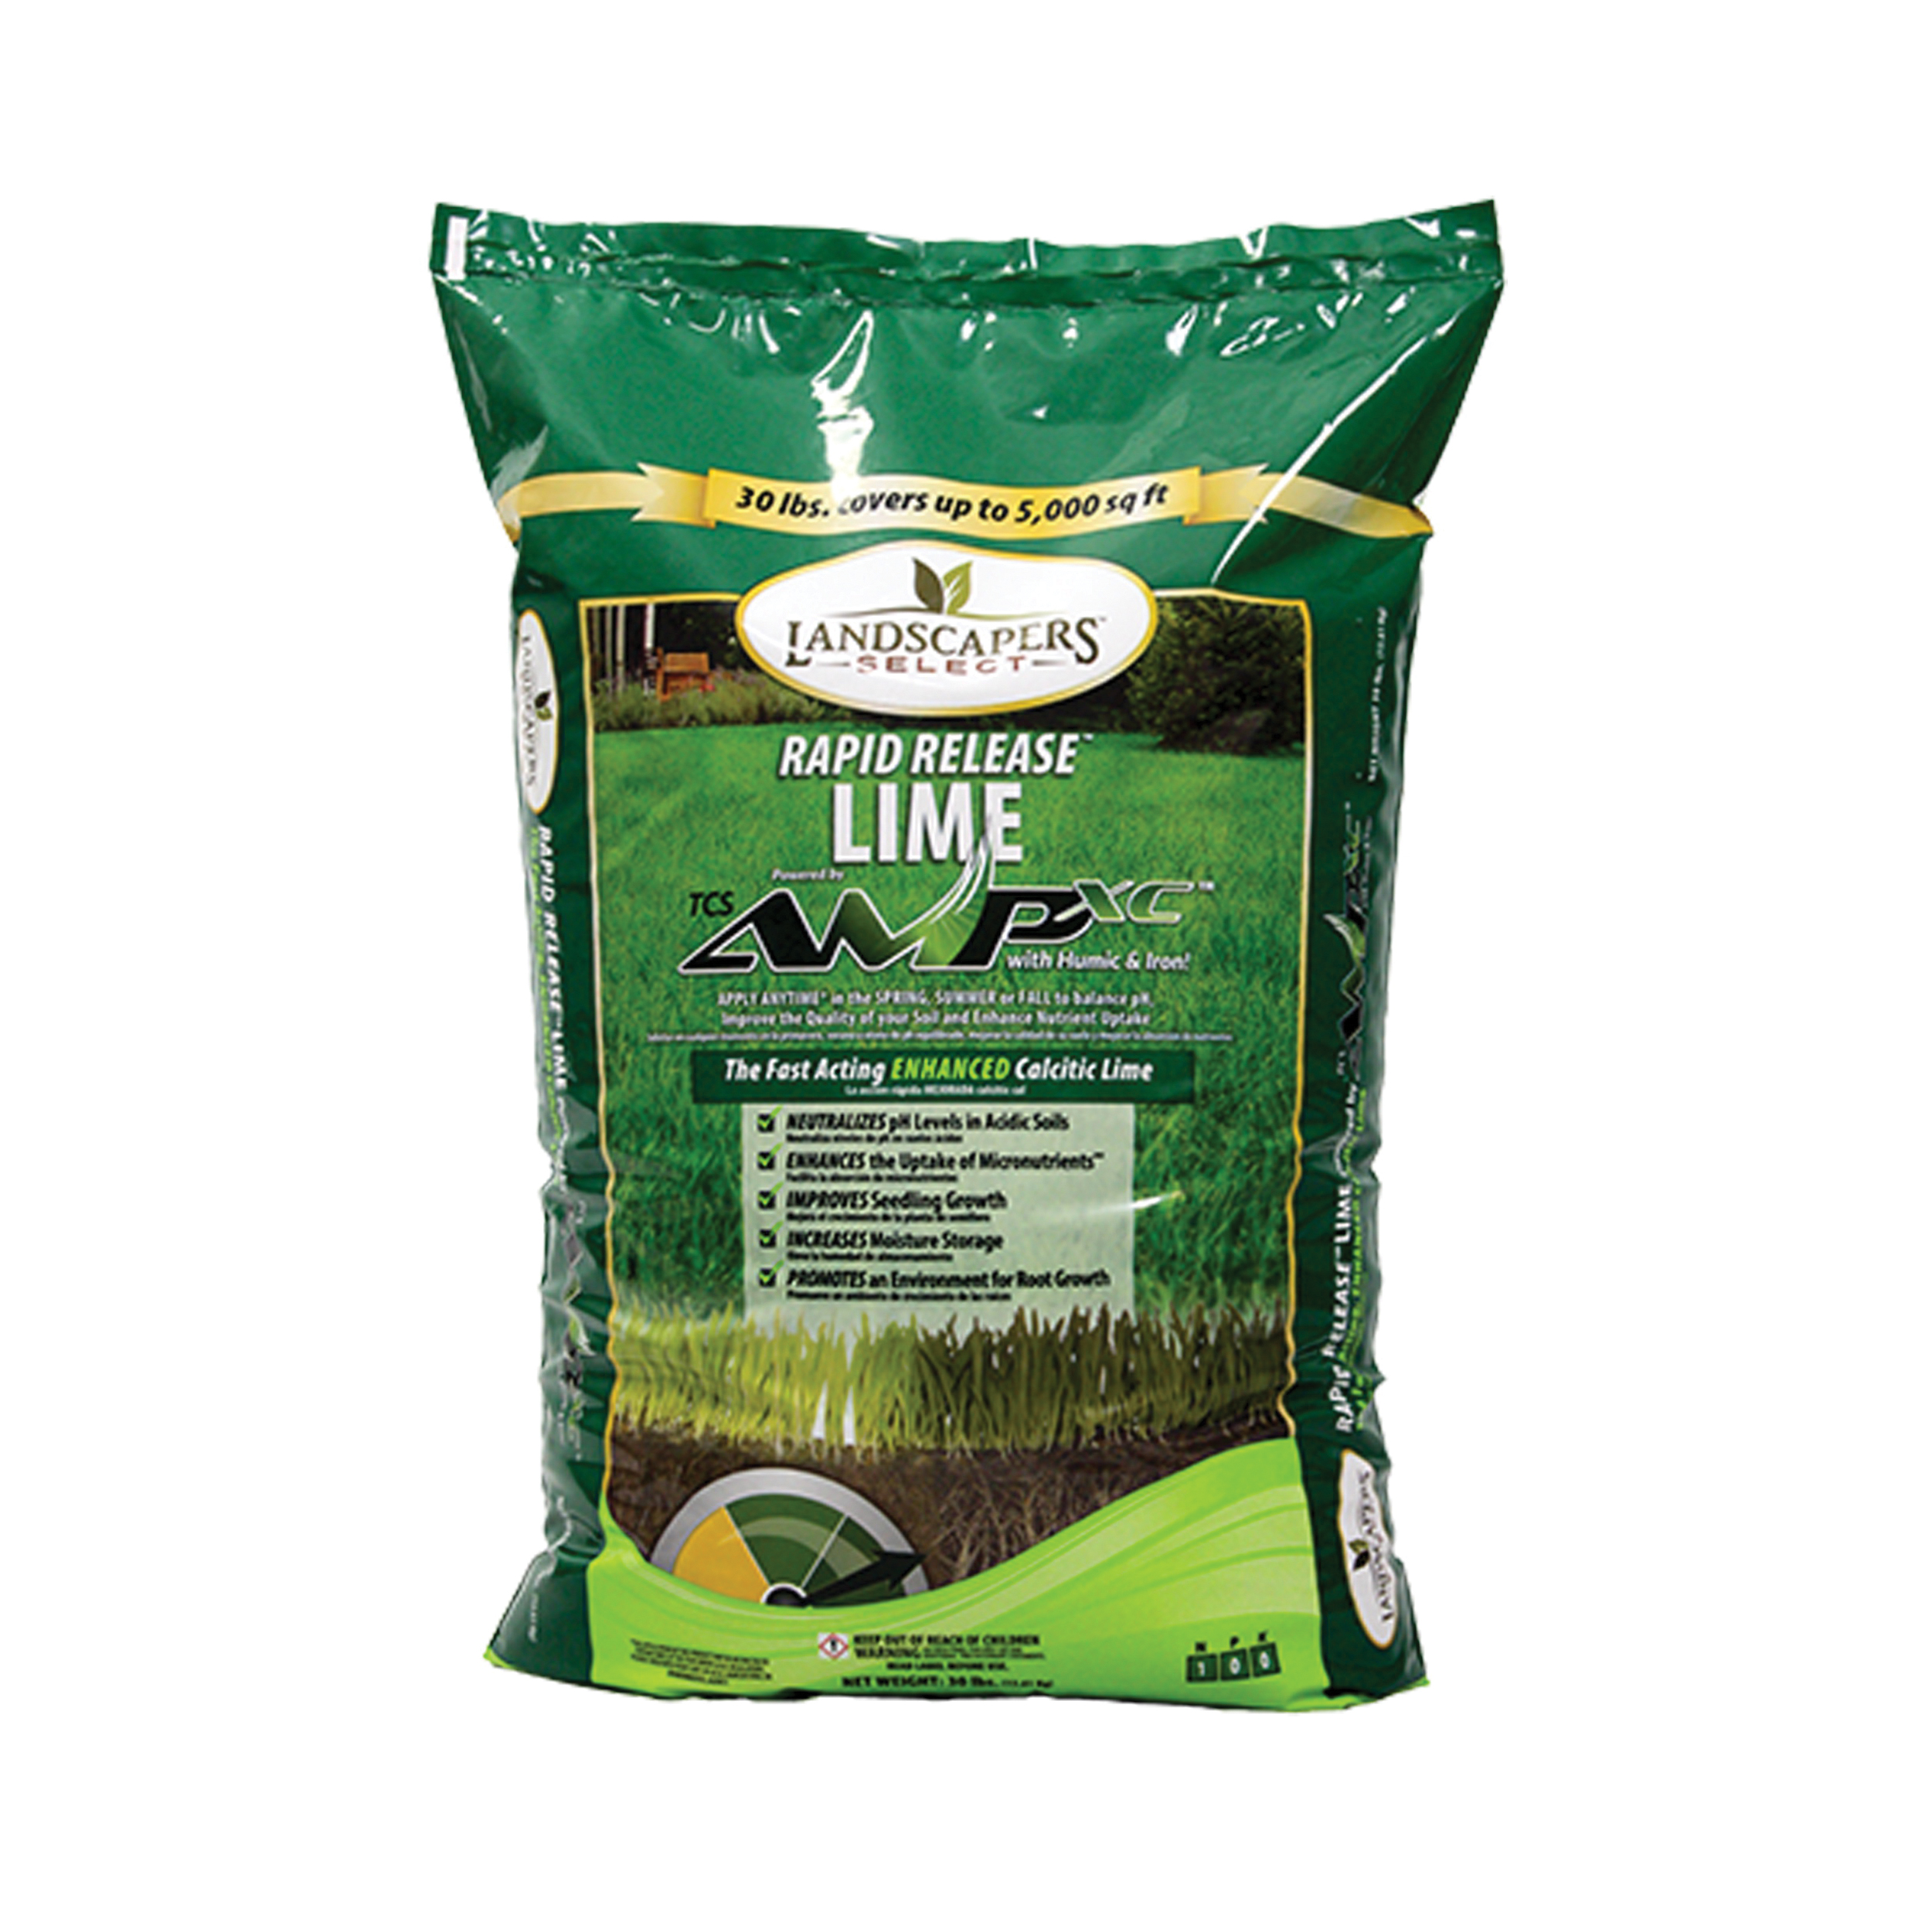 Picture of Landscapers Select 903071 Soil Conditioner with Humic and Iron, 30 lb Package, Bag